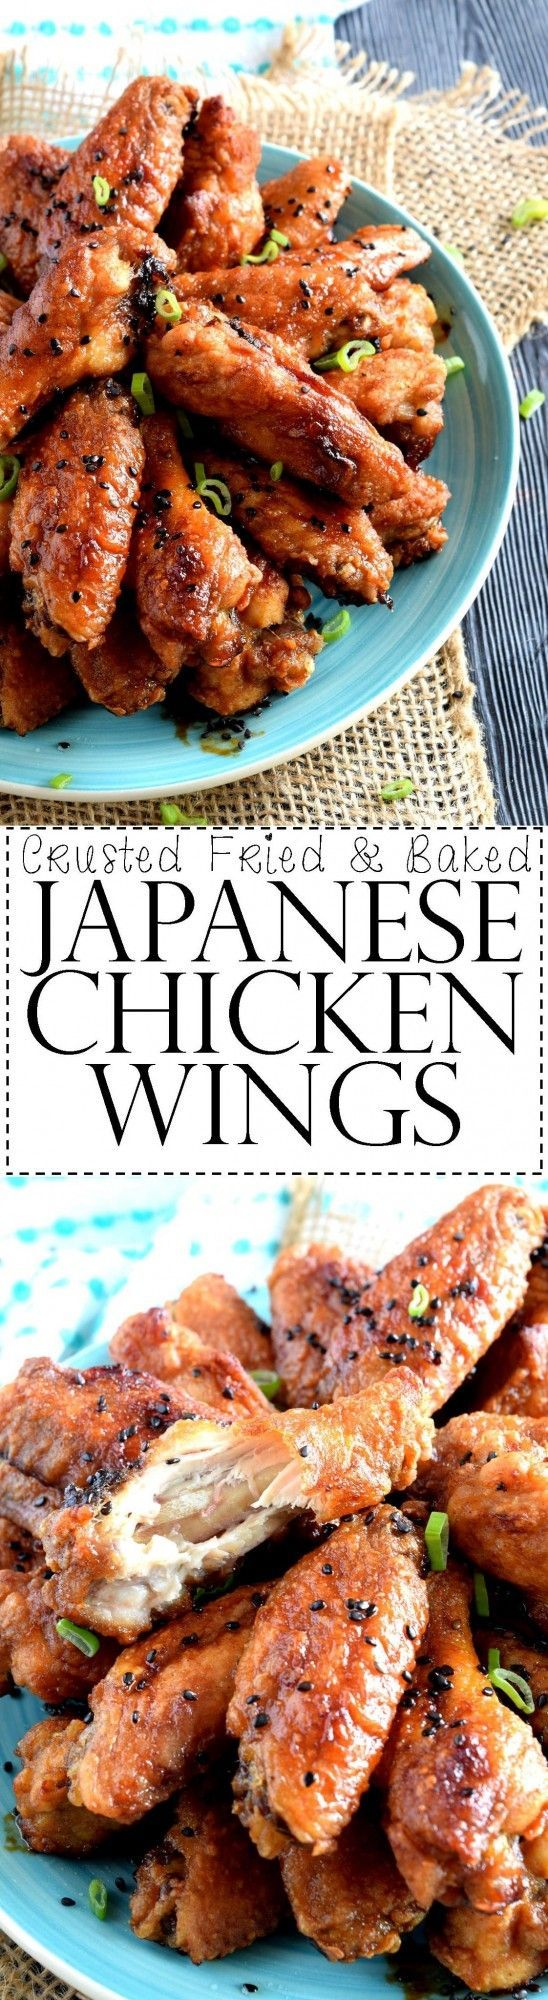 698 best easy appetizers images on pinterest appetizer recipes crusted fried and baked japanese chicken wings lord byrons kitchen forumfinder Image collections